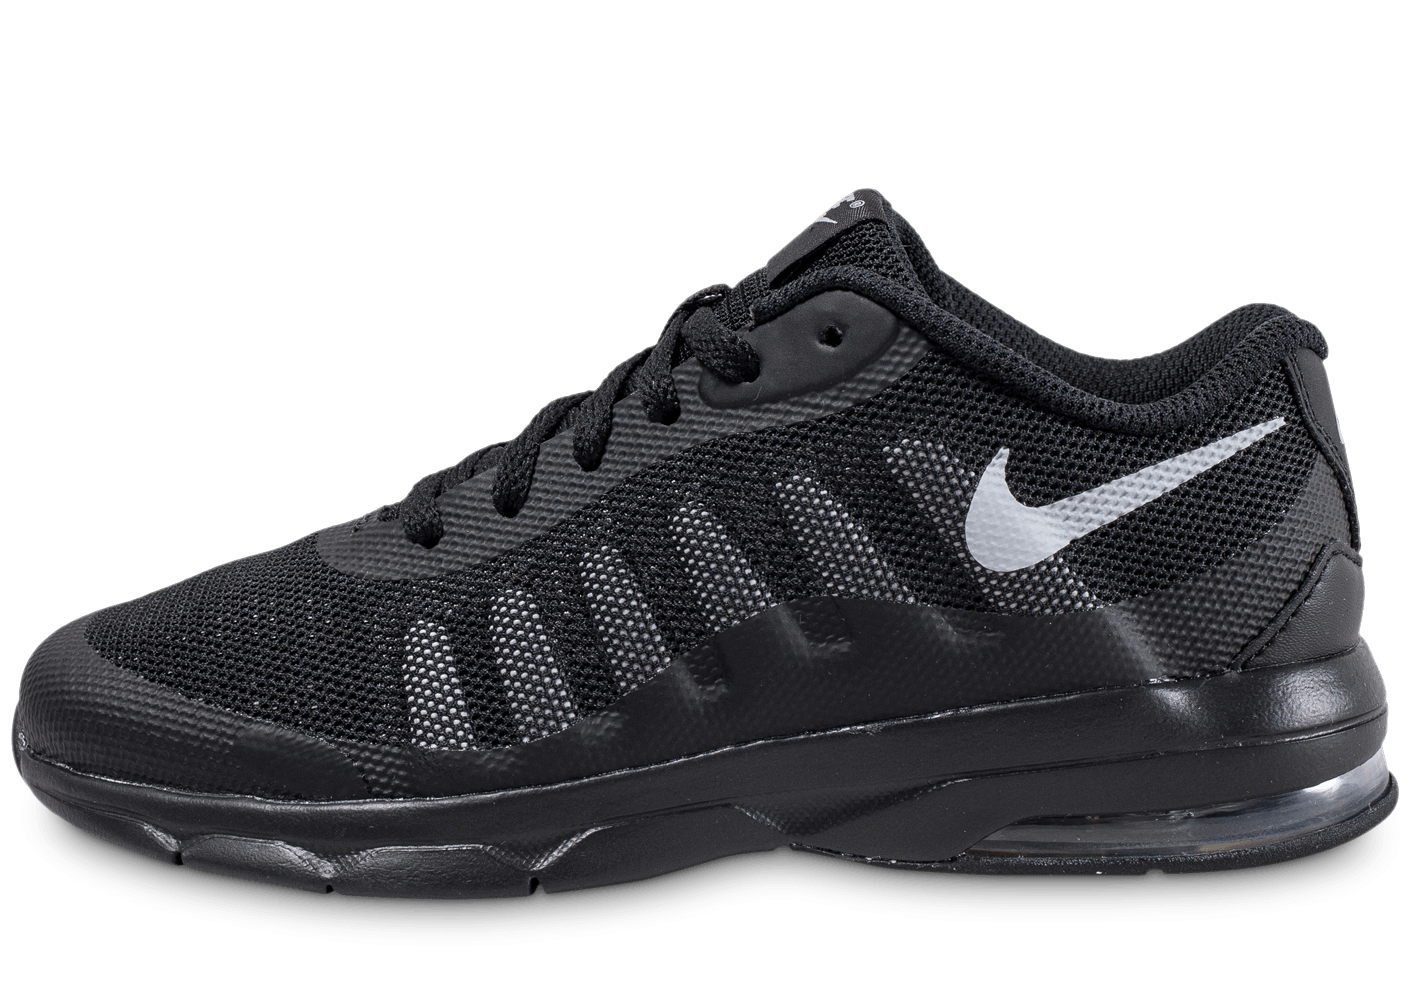 nike air max invigor enfant noire chaussures enfant chausport. Black Bedroom Furniture Sets. Home Design Ideas